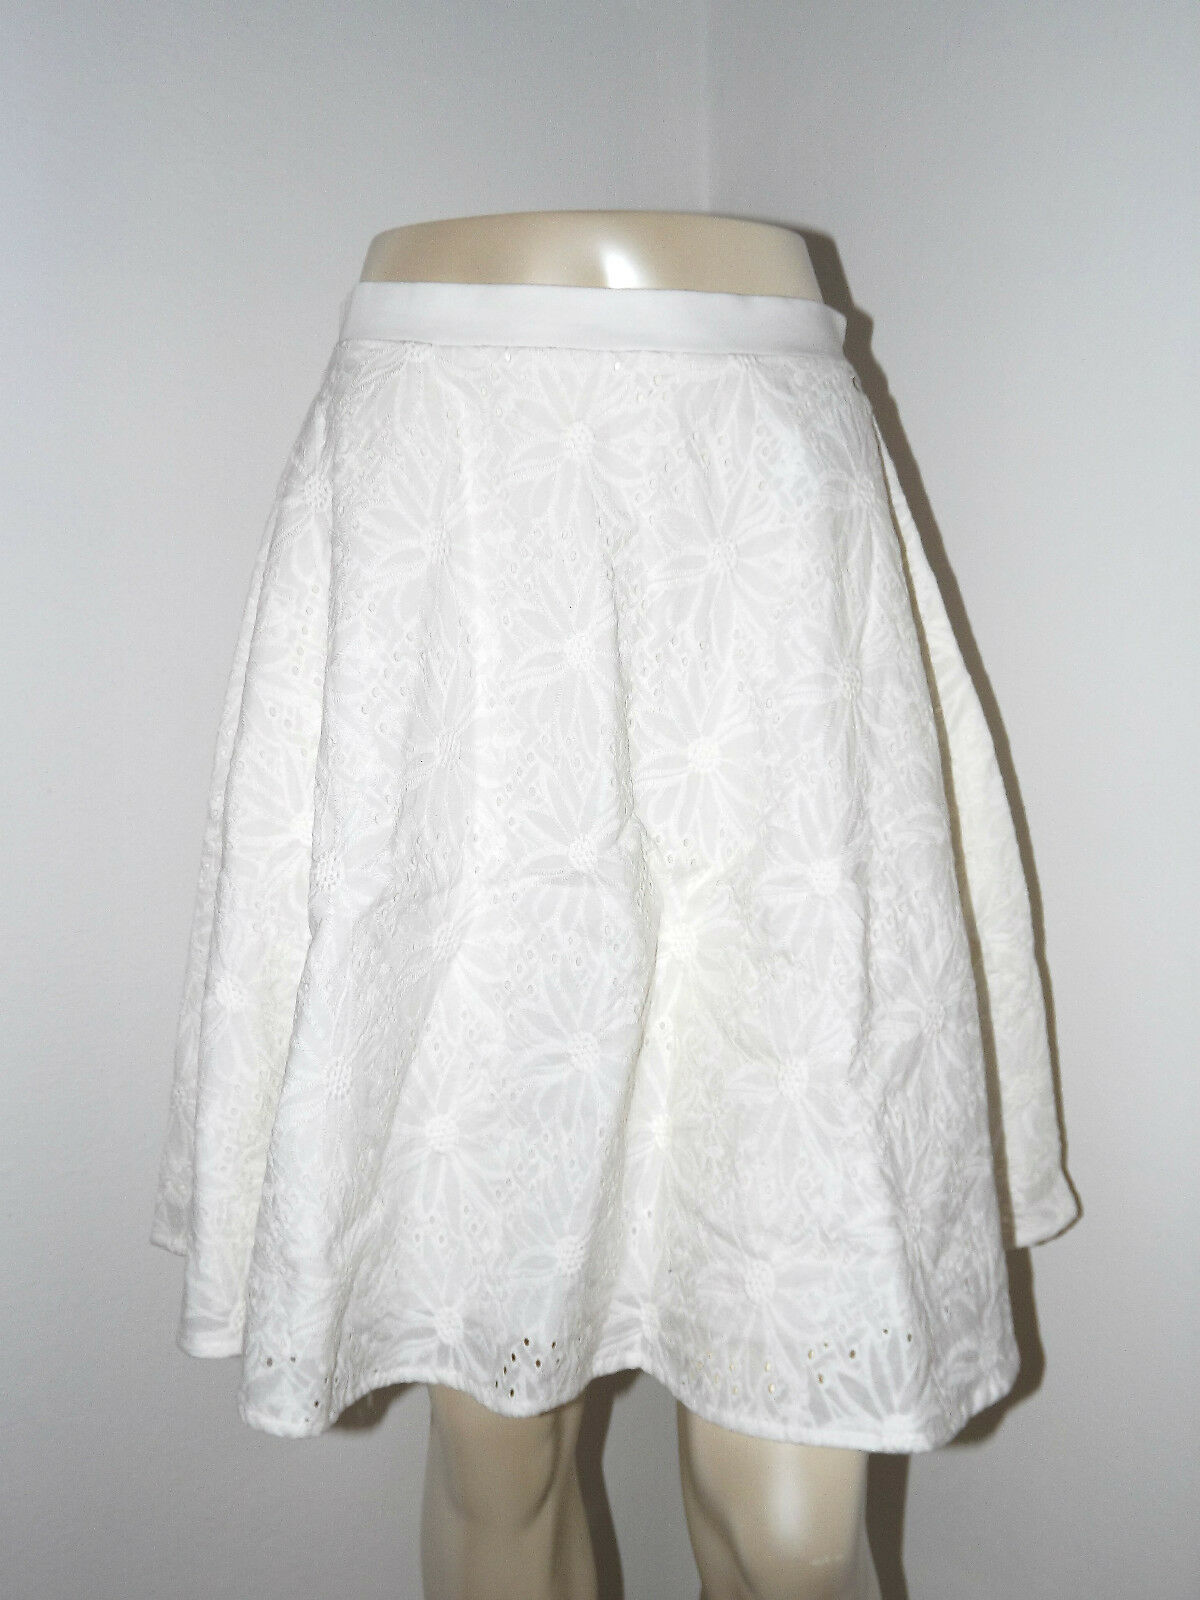 SCONTO 50% FORNARINA GONNA ESTATE BIANCO TG. XS M L REGINA Weiß Baumwolle SKIRT